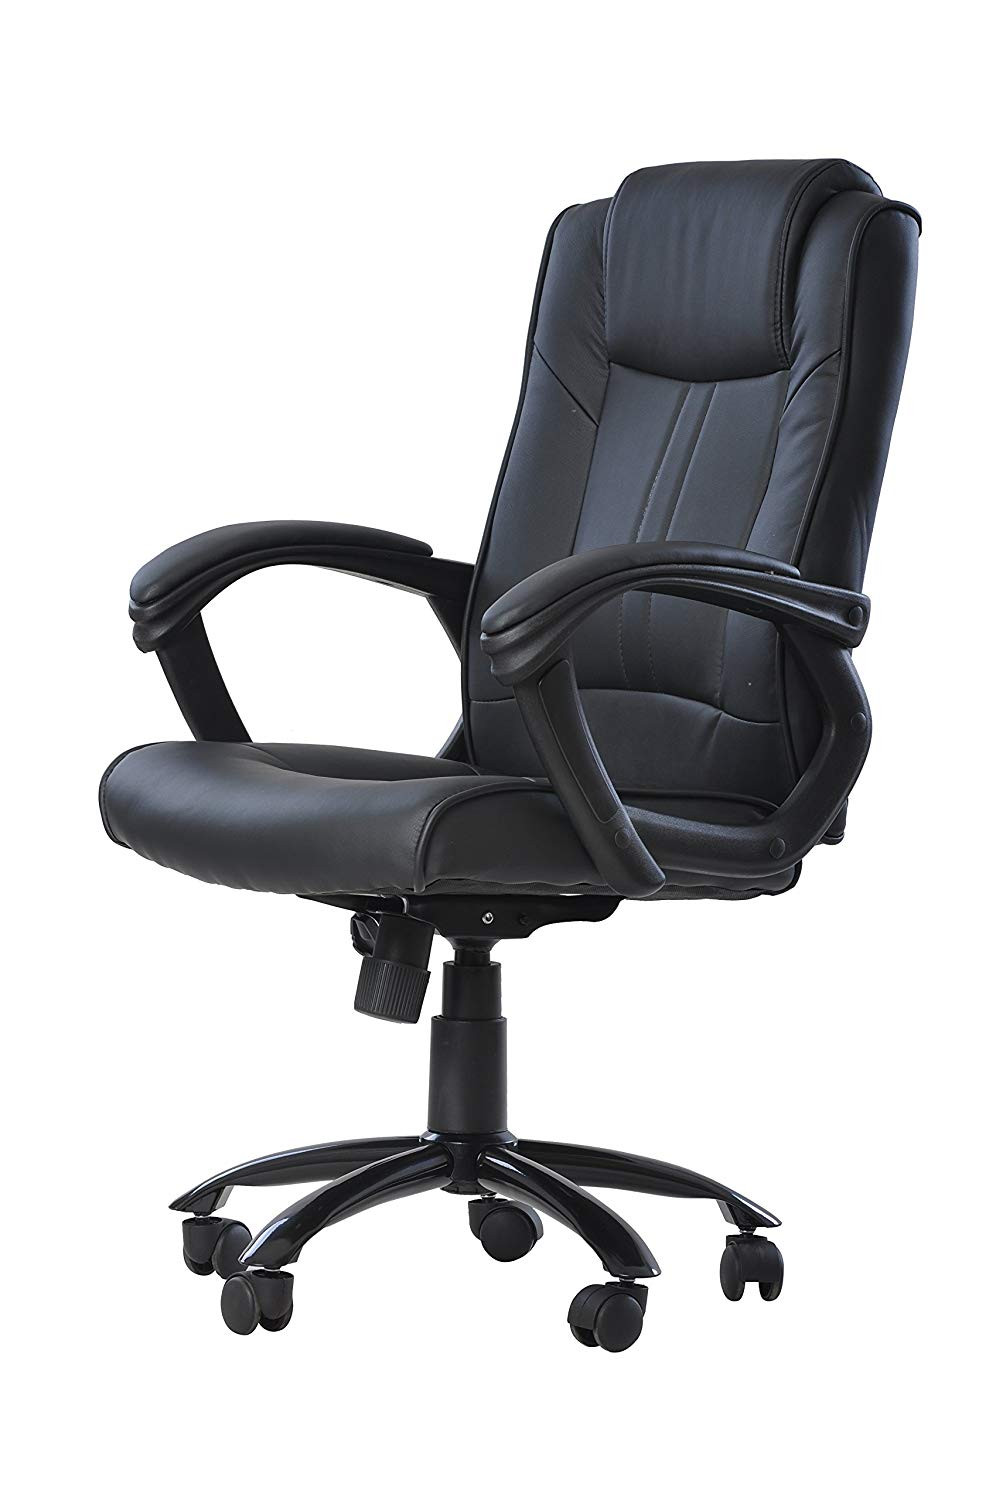 Best ideas about Best Cheap Office Chair . Save or Pin Best Cheap fice Chair Now.